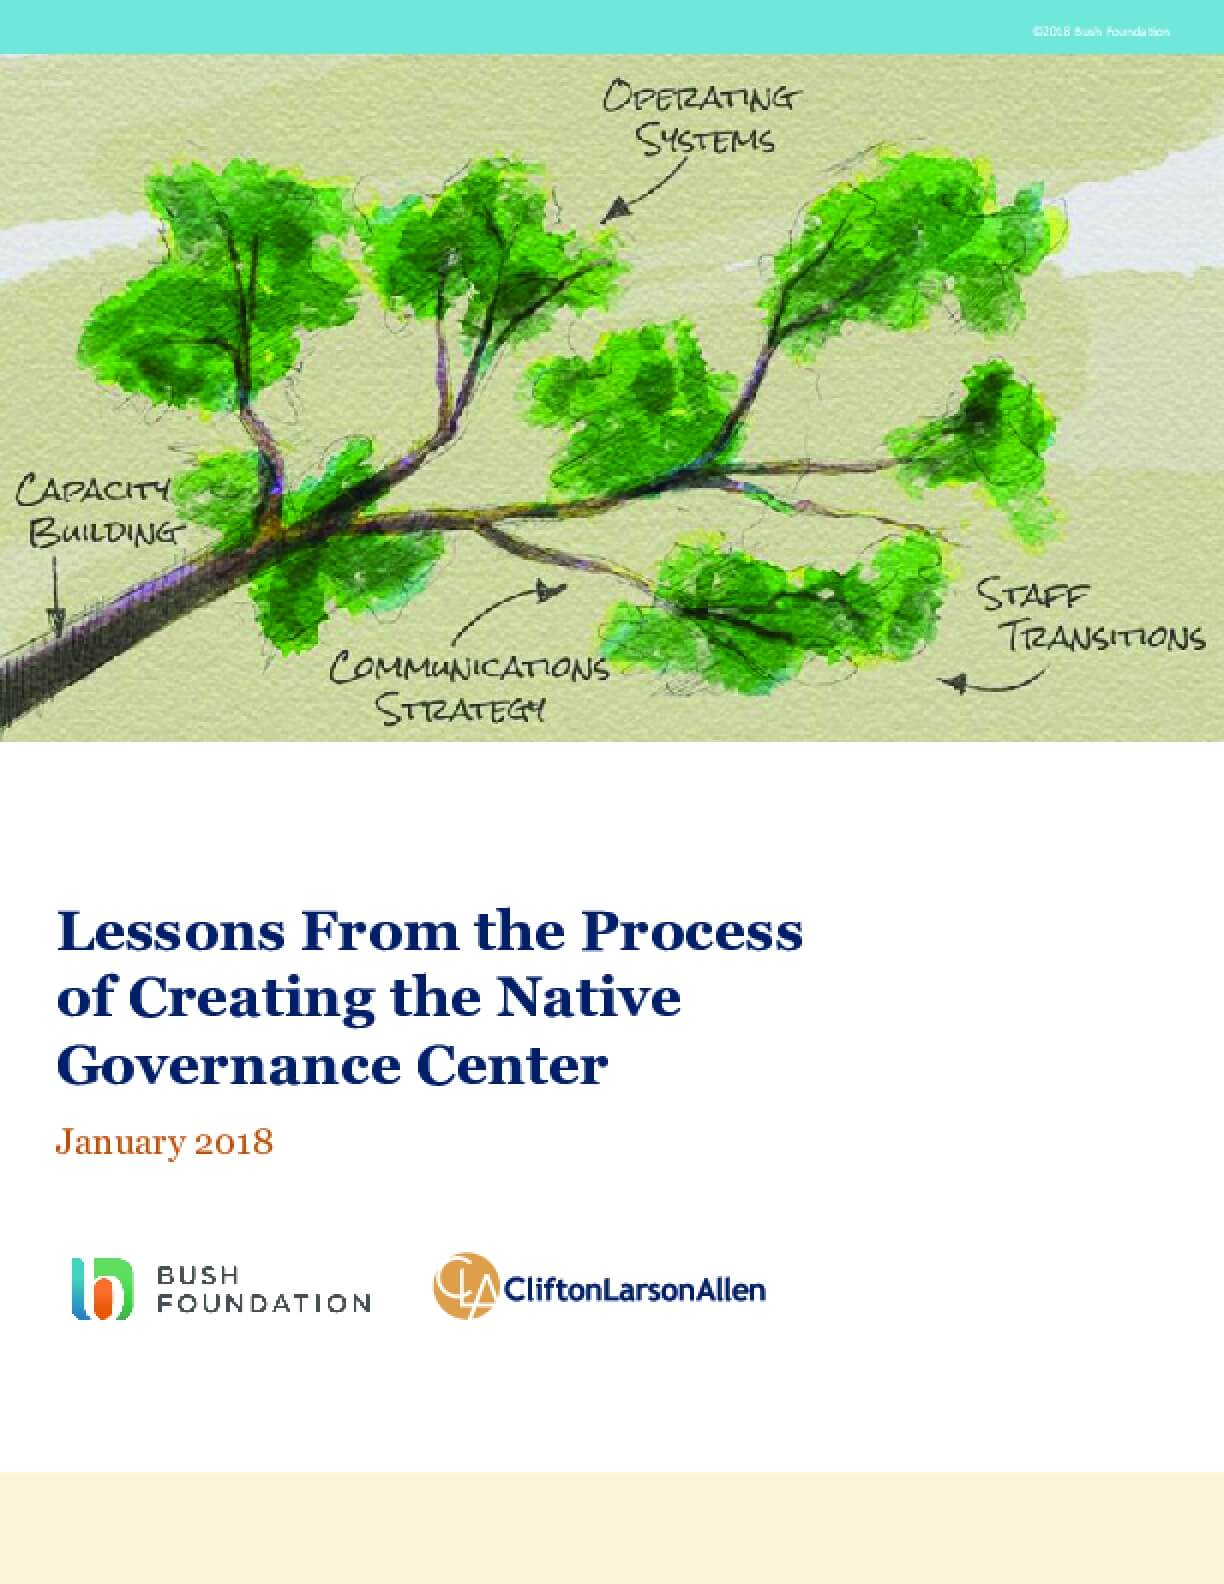 Lessons from the Process of Creating the Native Governance Center